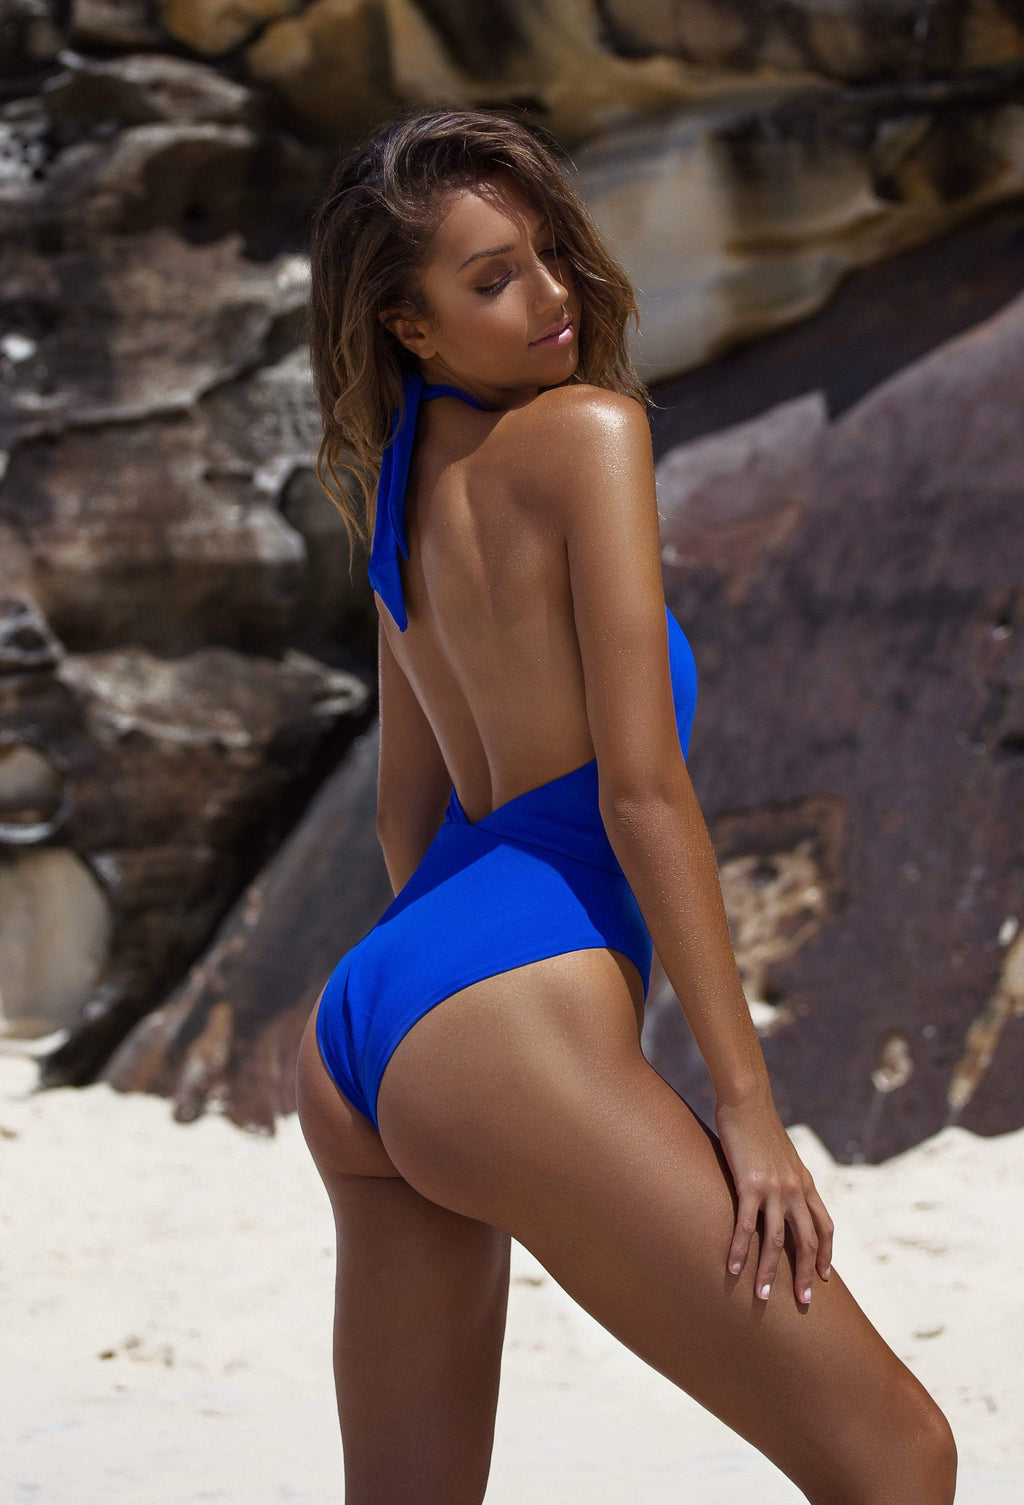 Alessia One Piece Cobalt Blue - Plumeria Swimwear